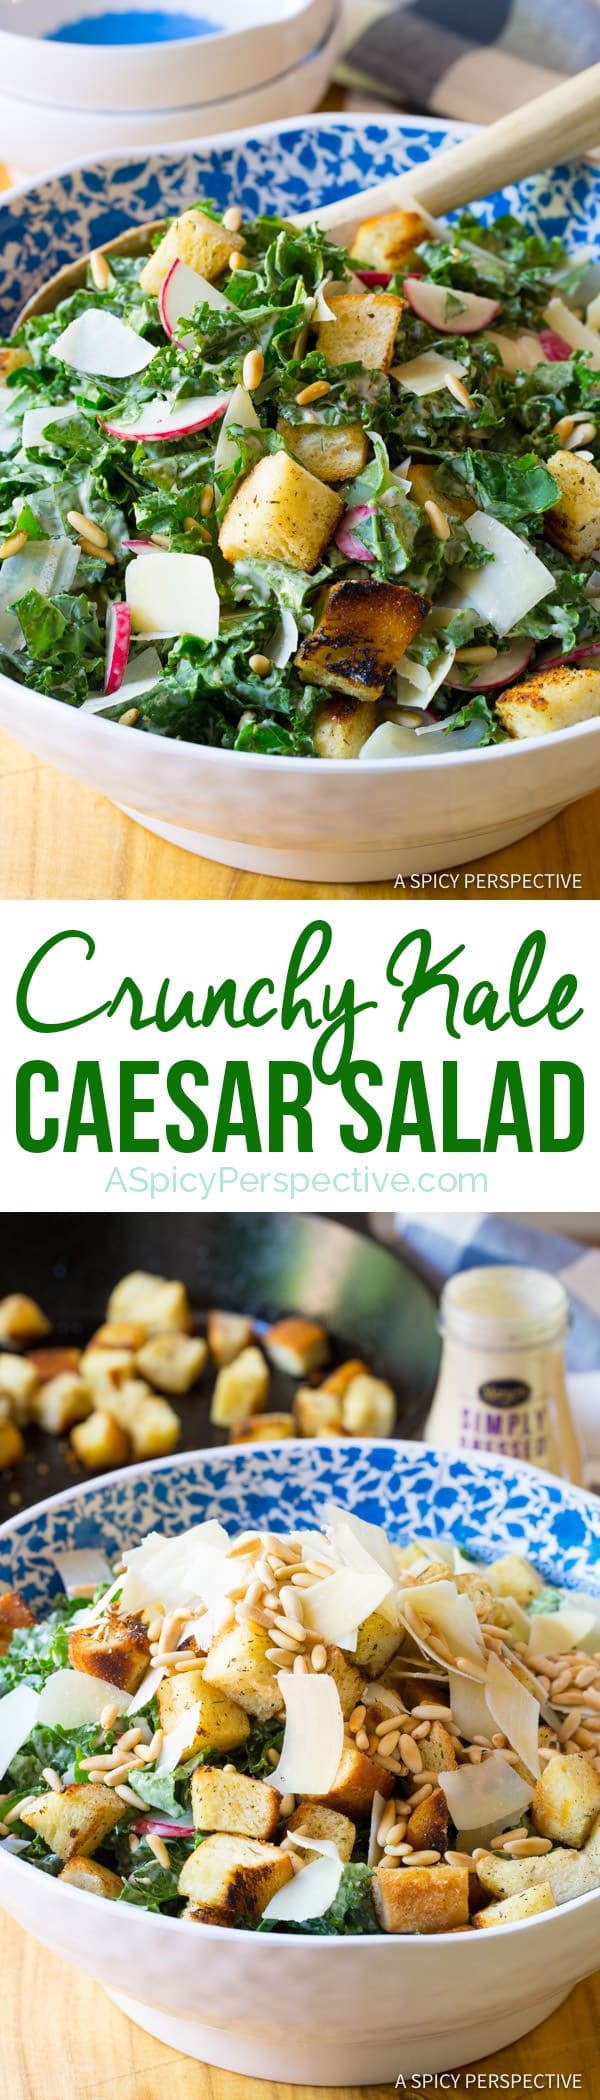 Healthy Crunchy Kale Caesar Salad Recipe | ASpicyPerspective.com